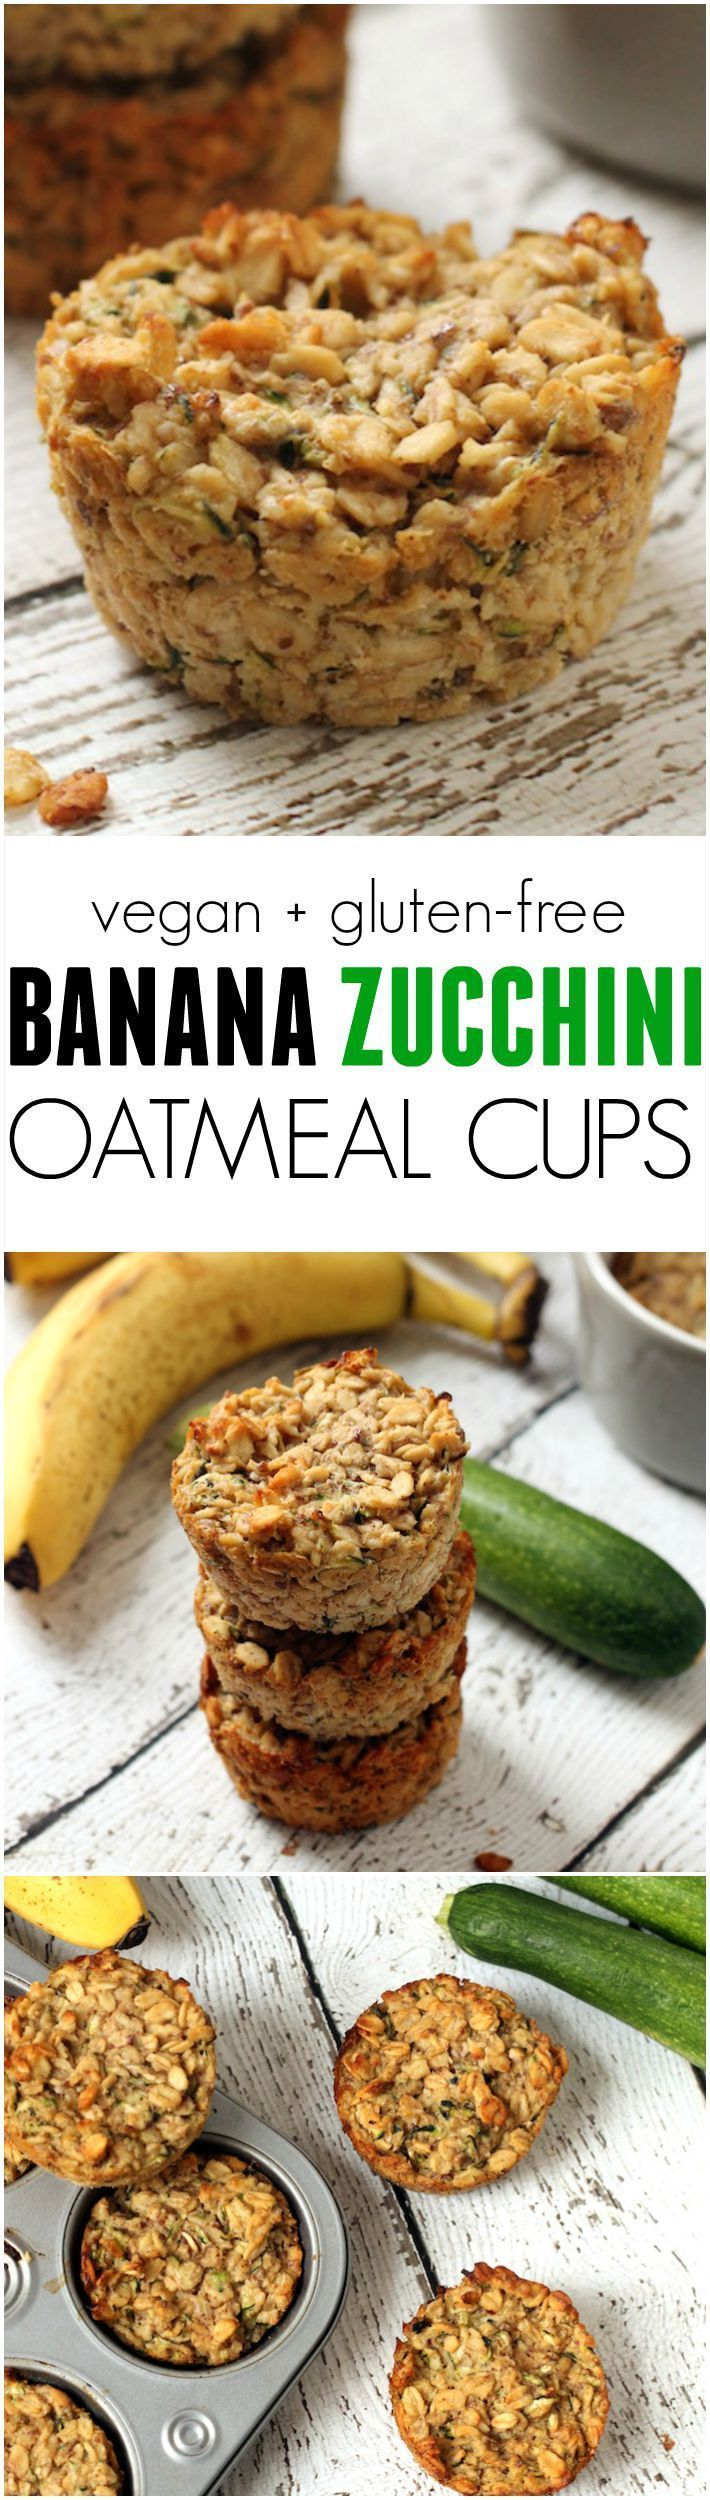 Banana Zucchini Oatmeal Cups --a portable, easy, healthy, breakfast on-the-go! Vegan, gluten-free, kid-friendly, no refined sugar. http://Hummusapien.com